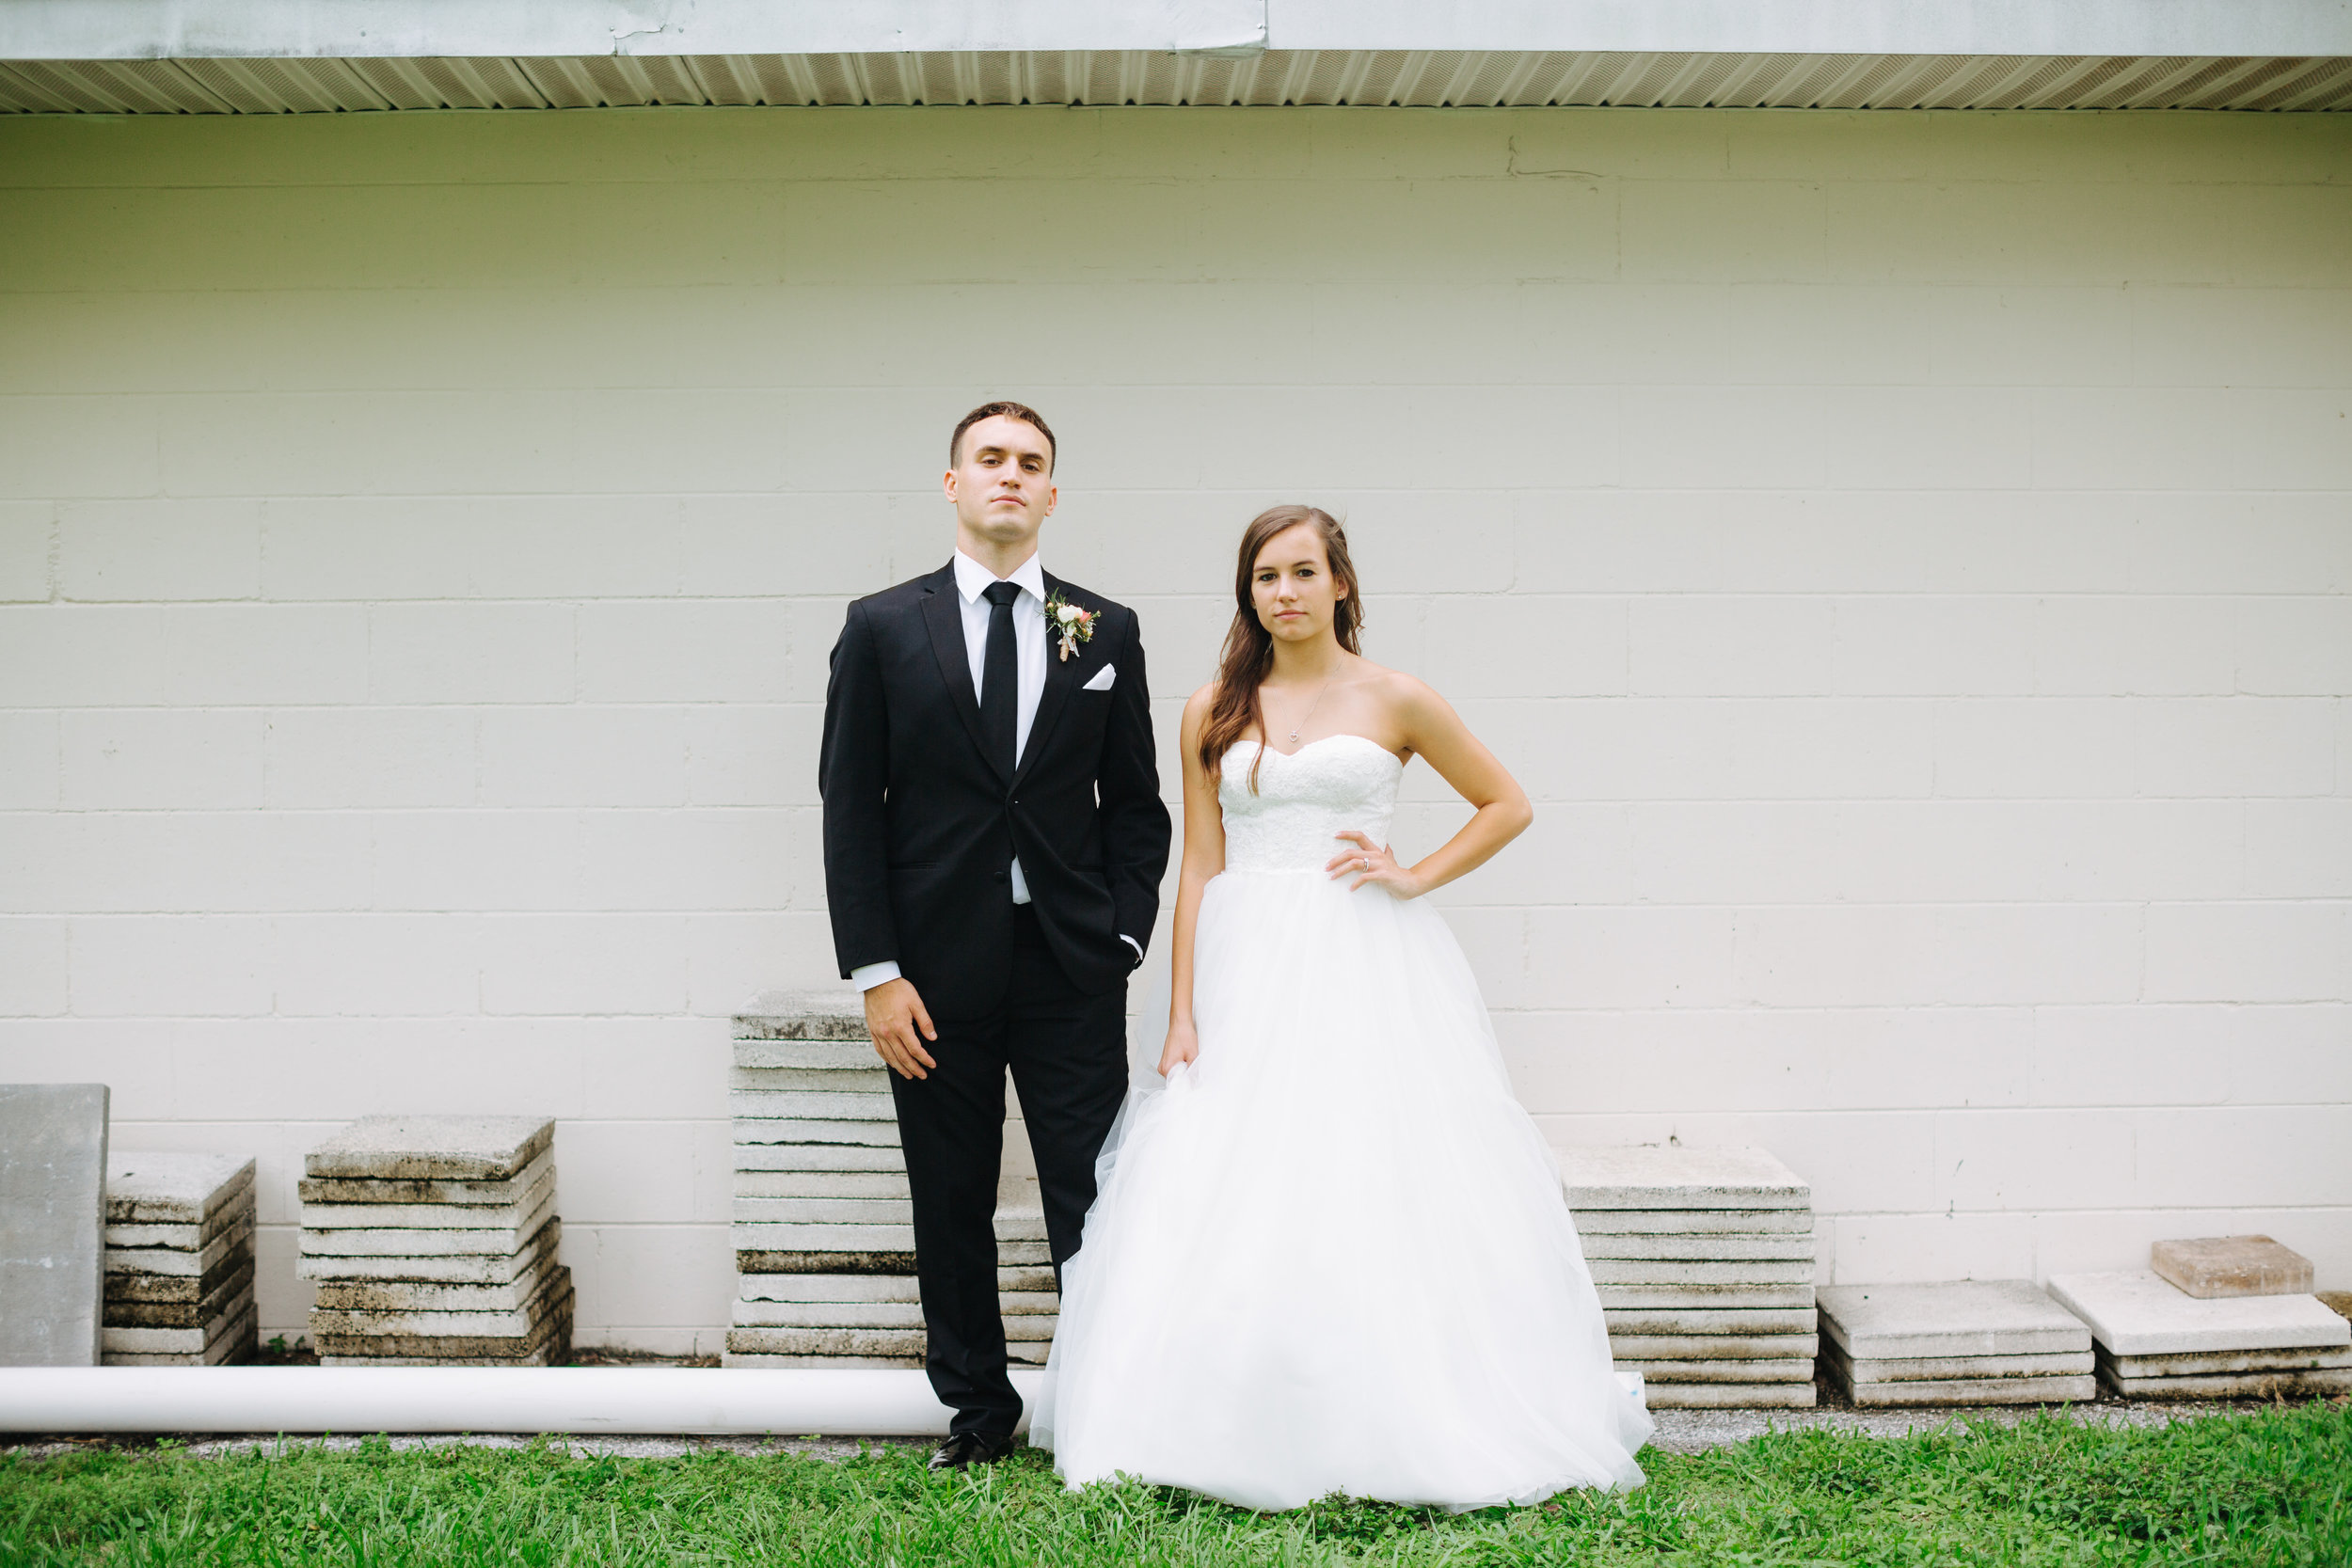 Alex & Heather - Portraits - Jake & Katie Photography_256.jpg